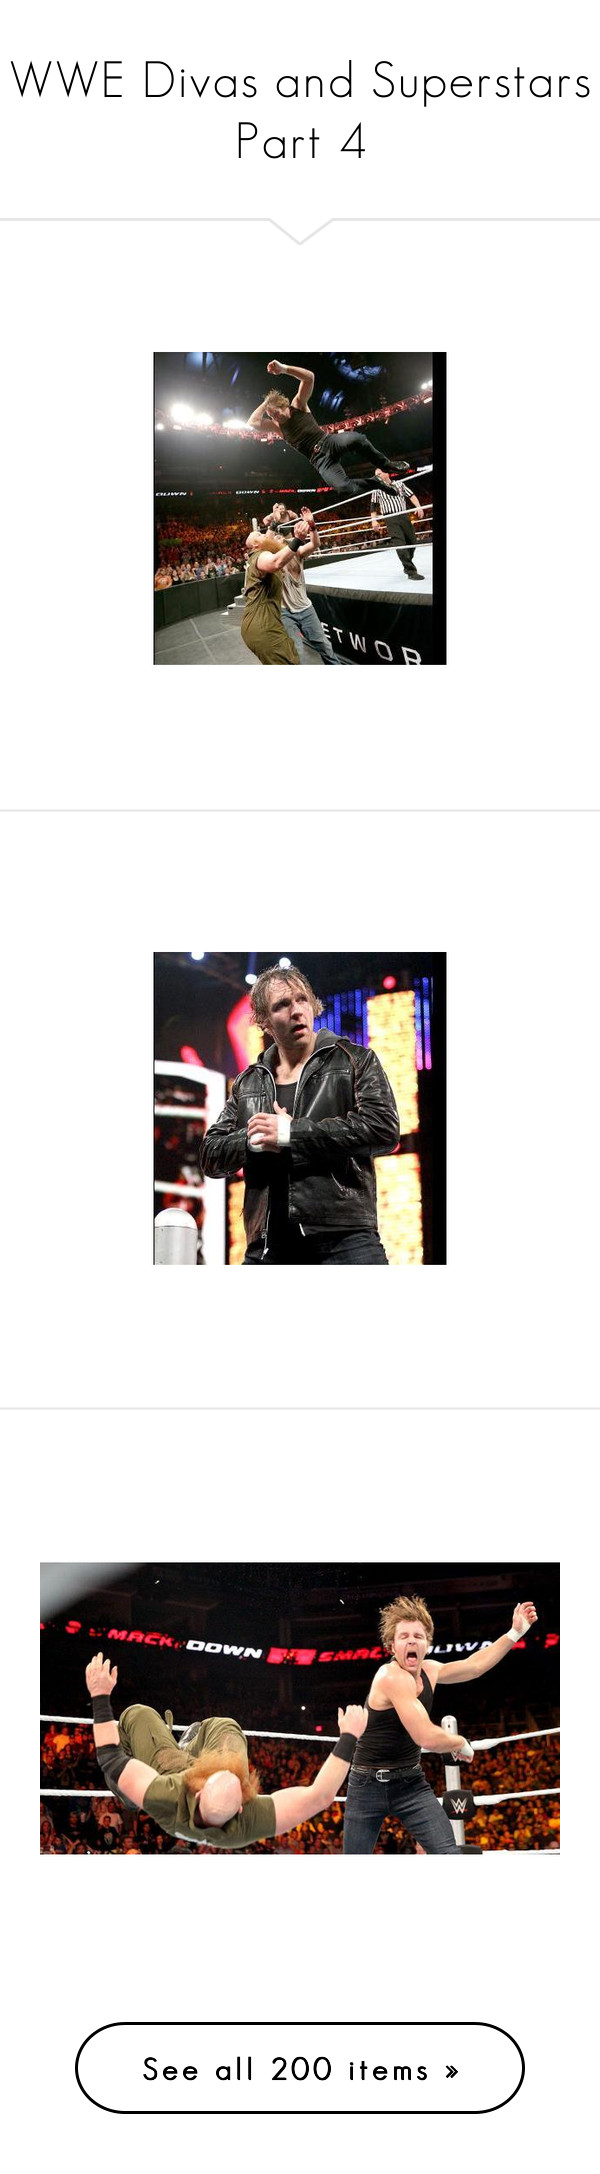 """""""WWE Divas and Superstars Part 4"""" by belabmilagres ❤ liked on Polyvore featuring paige, wwe, home, home decor, small item storage, accessories, paige wwe, dean ambrose, guys and people"""